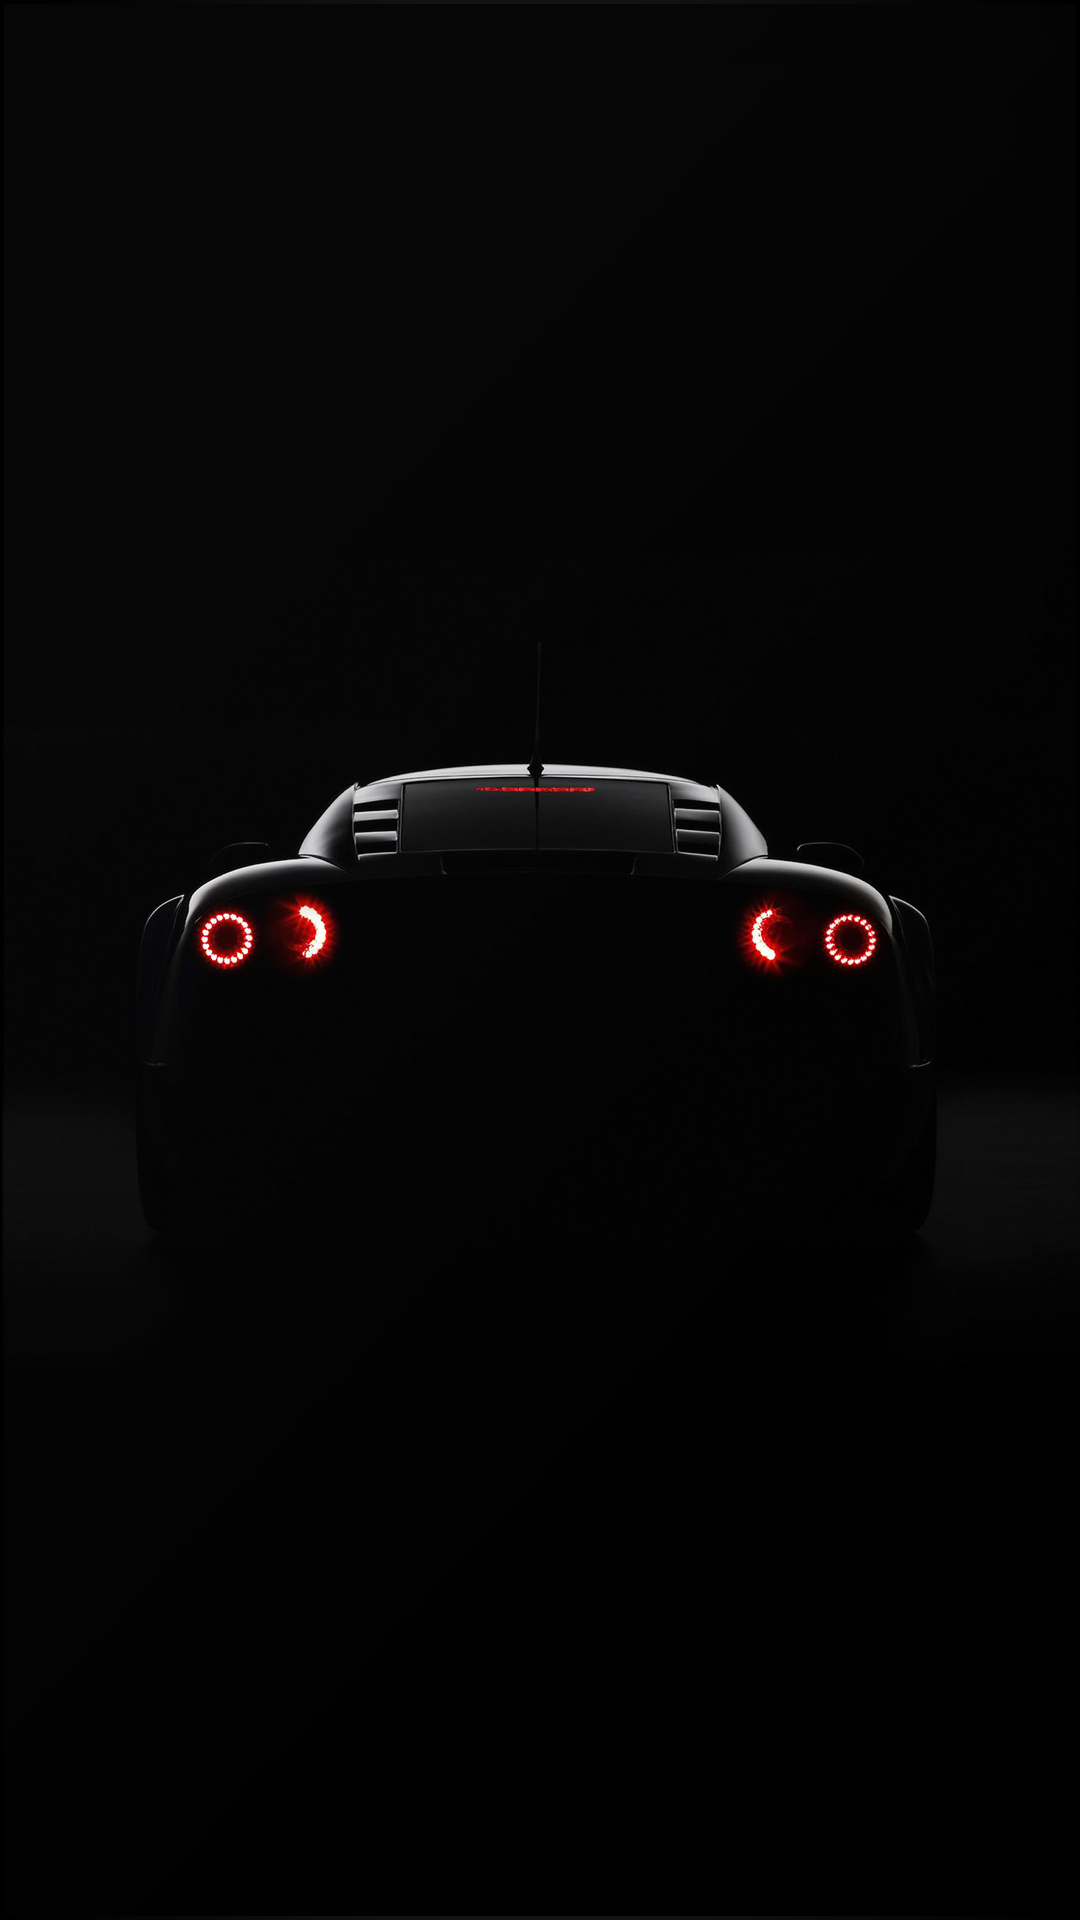 Racing Black 1080 X 1920 FHD Wallpaper